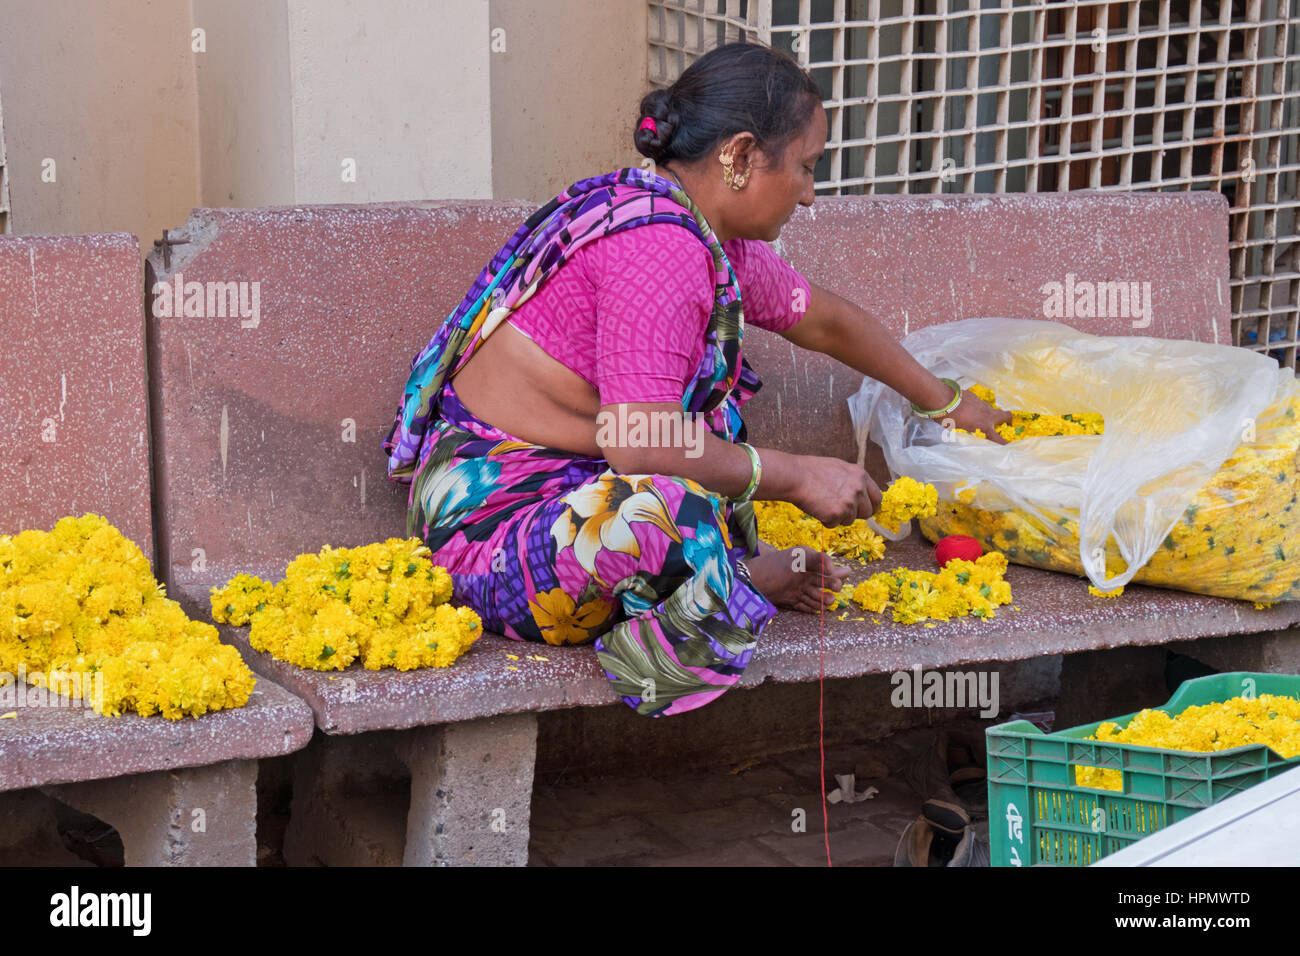 Unidentified woman in an Ahmedabad backstreet making garlands from marigold flowers for sale to worshippers as offerings - Stock Image